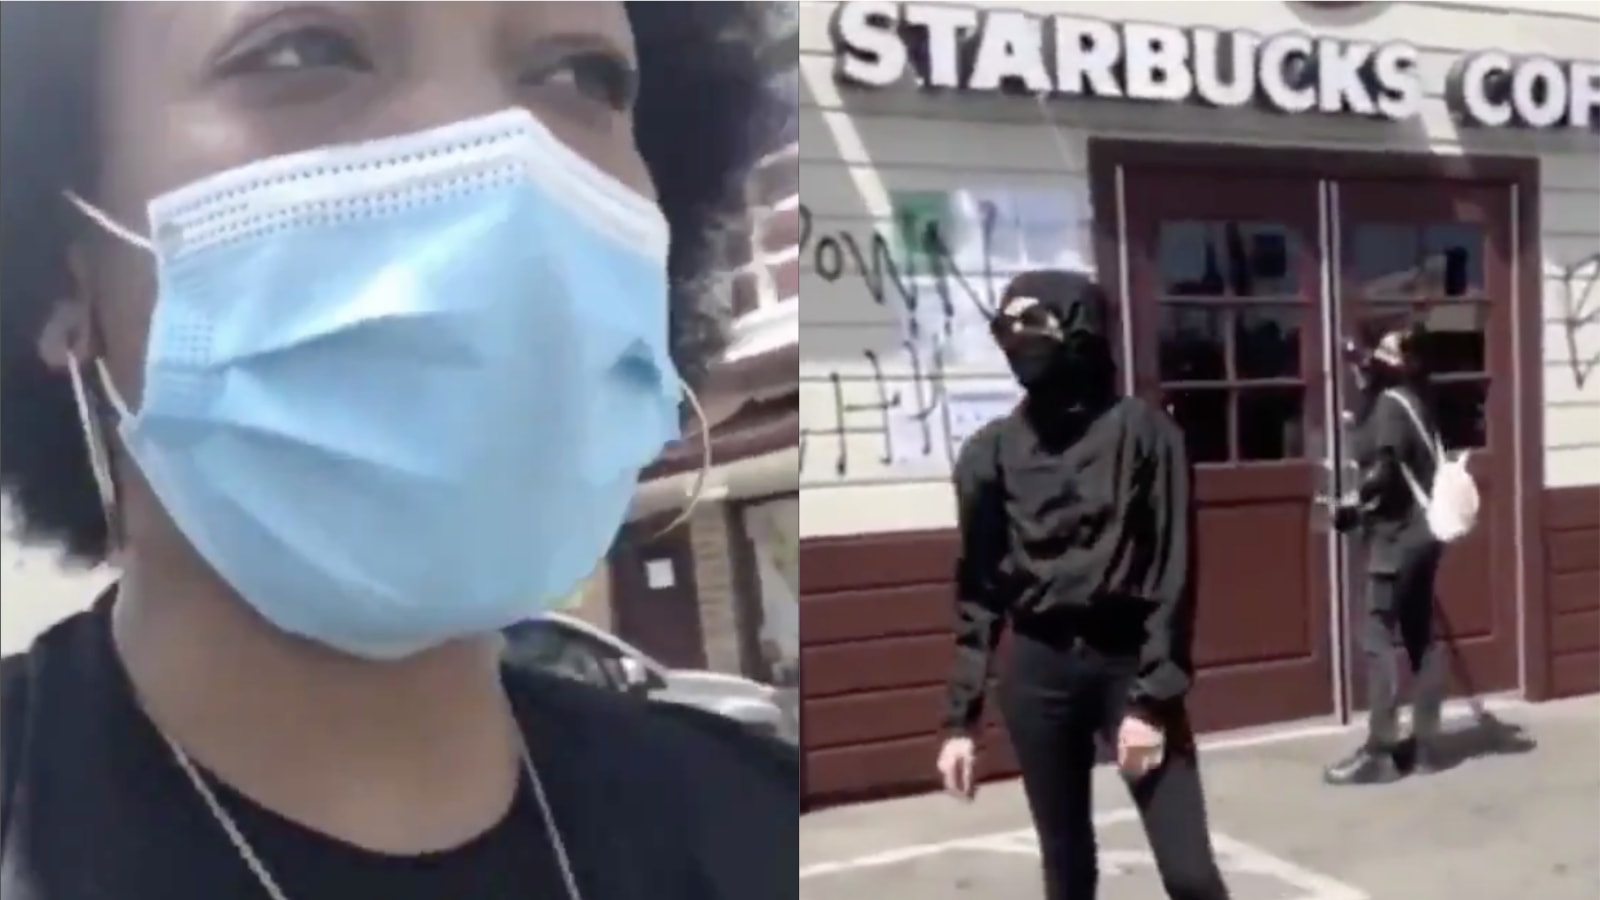 White Woman Tagging LA Starbucks With 'BLM' Confronted By Black Women: 'They Going To Blame That On Us'